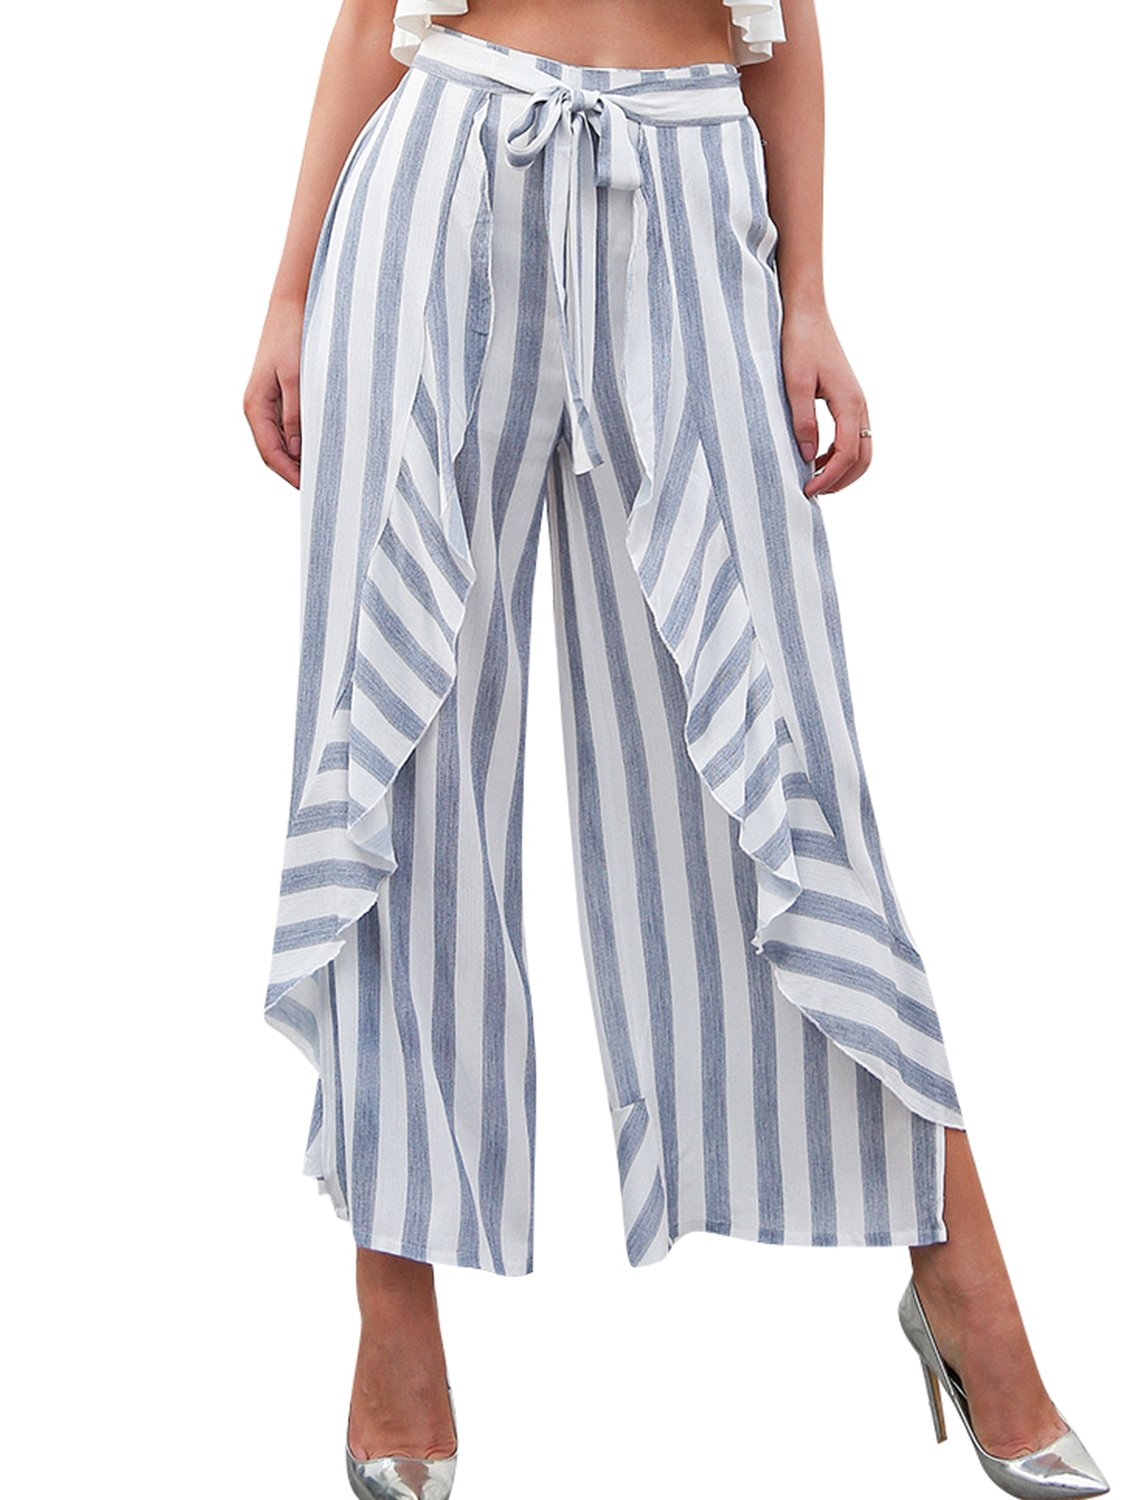 Simplee Women's Summer Casual Palazzo Pants Striped Loose Wide Leg Pants Light Blue US 10